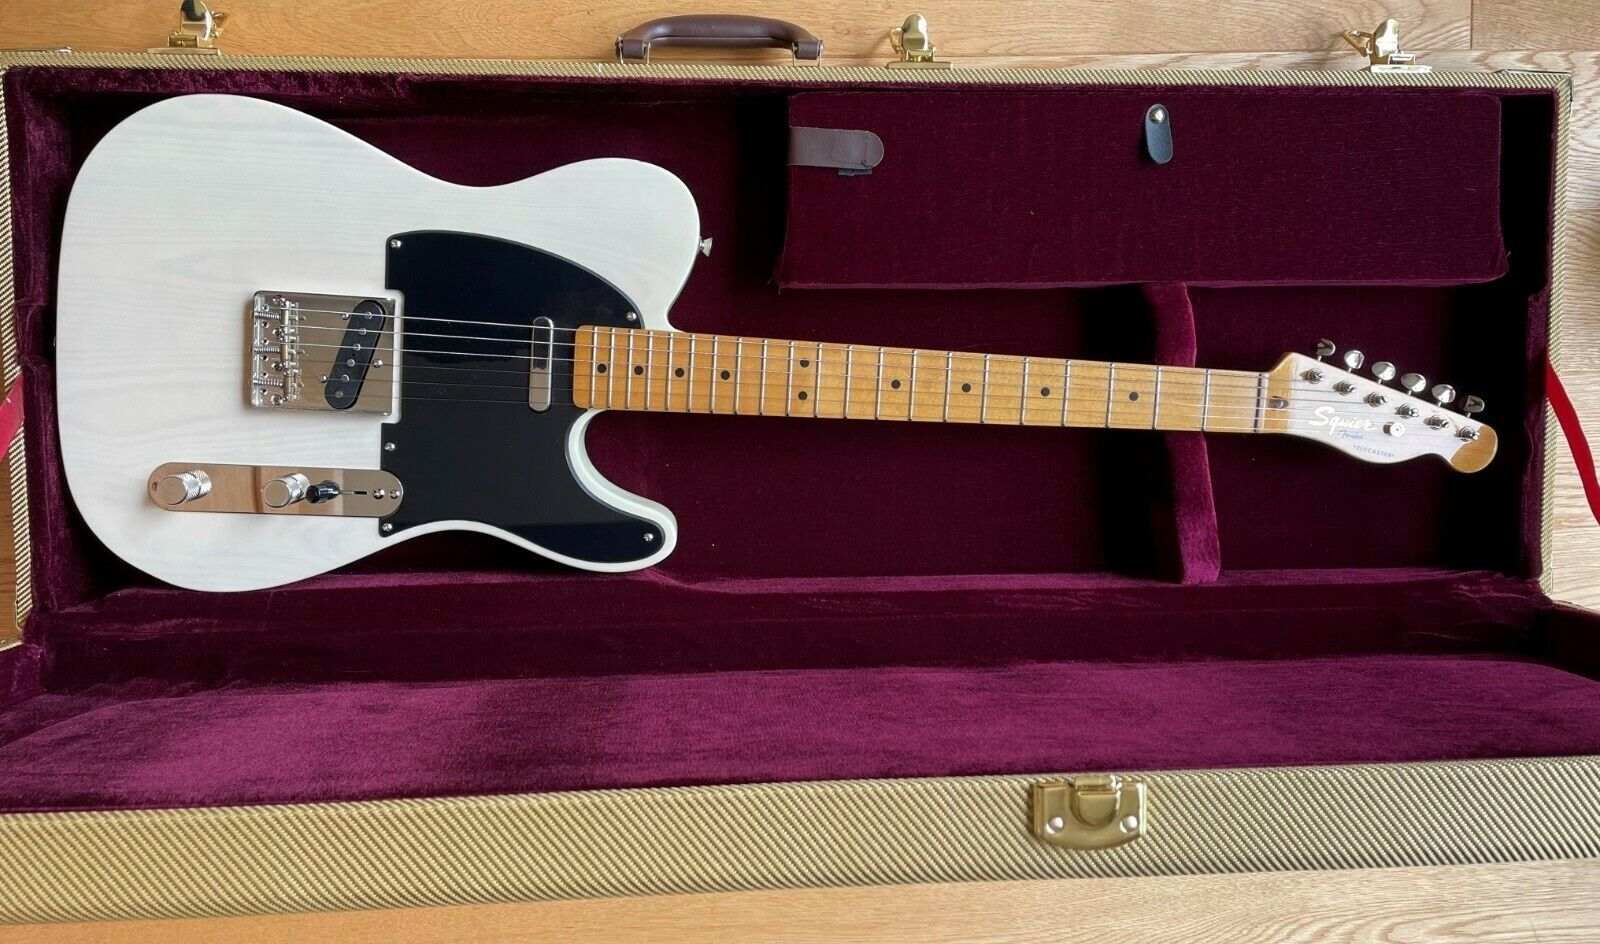 This Squier Telecaster electric guitar is for sale - Squier Classic Vibe 50s Telecaster with case + upgraded electronics